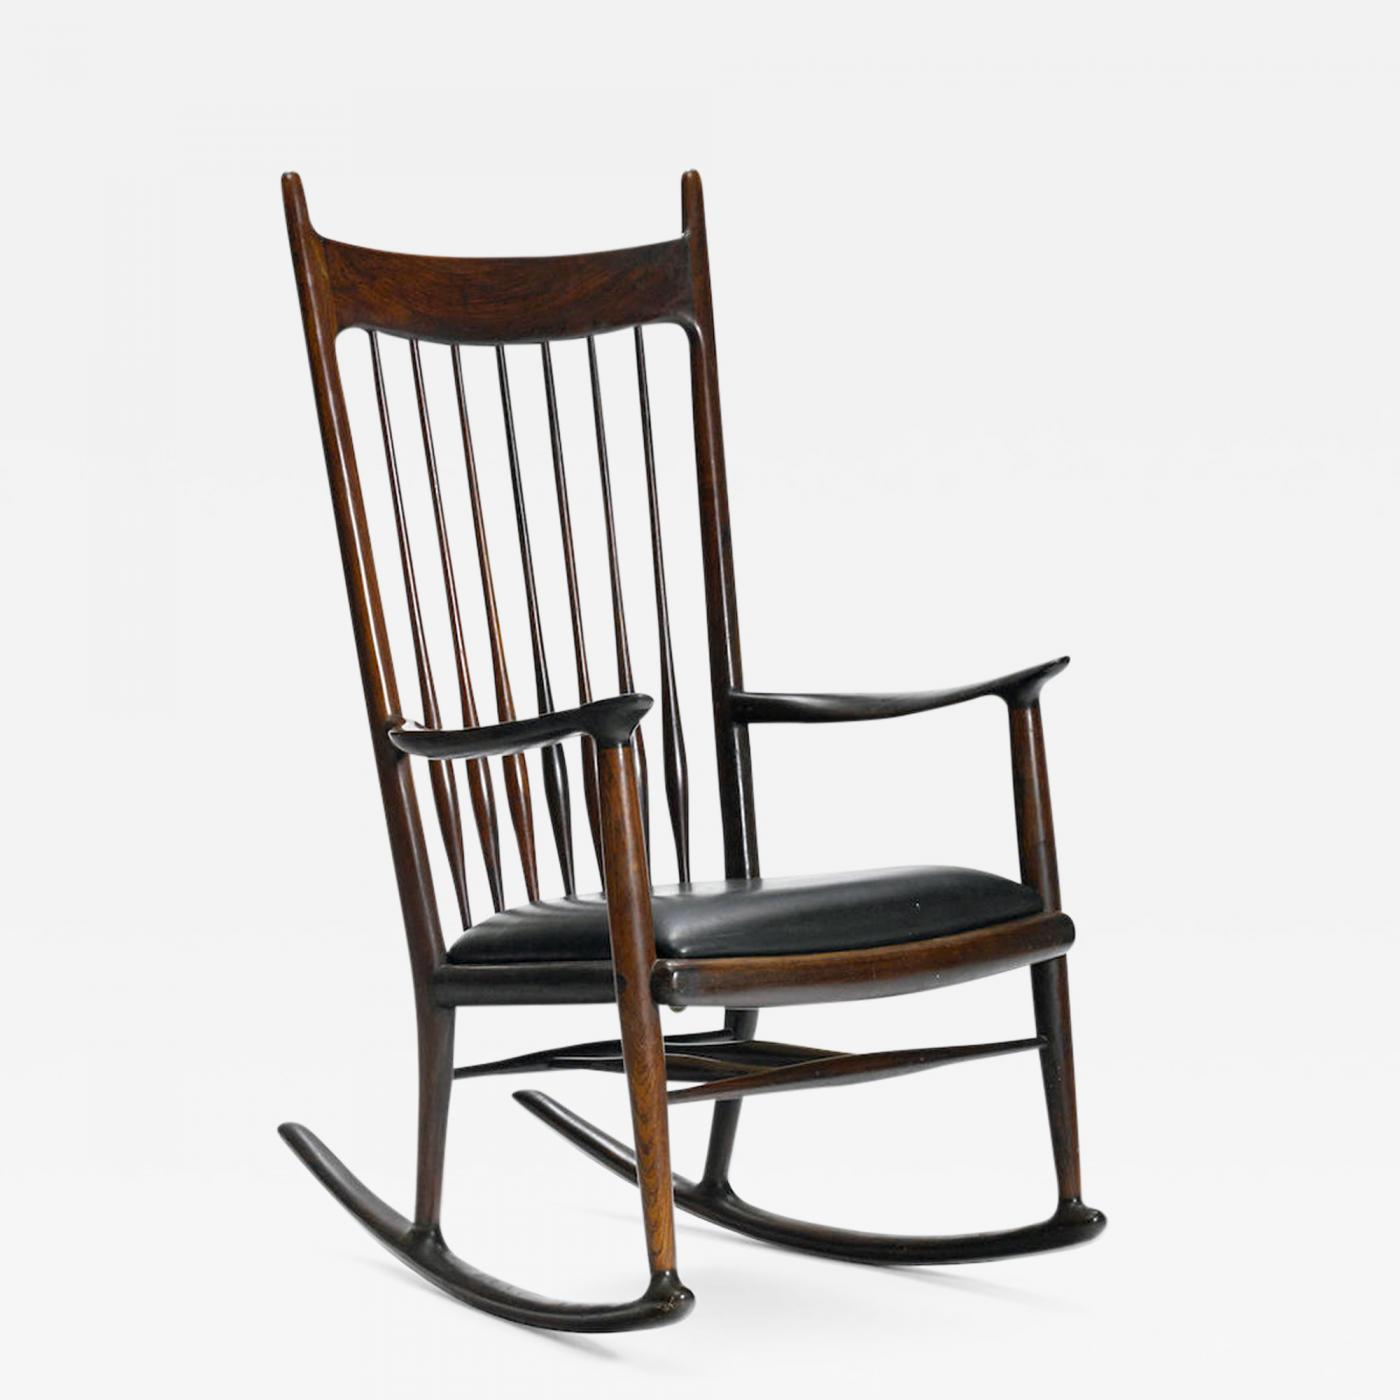 Sam Maloof An Early Rosewood Rocking Chair By Sam Maloof